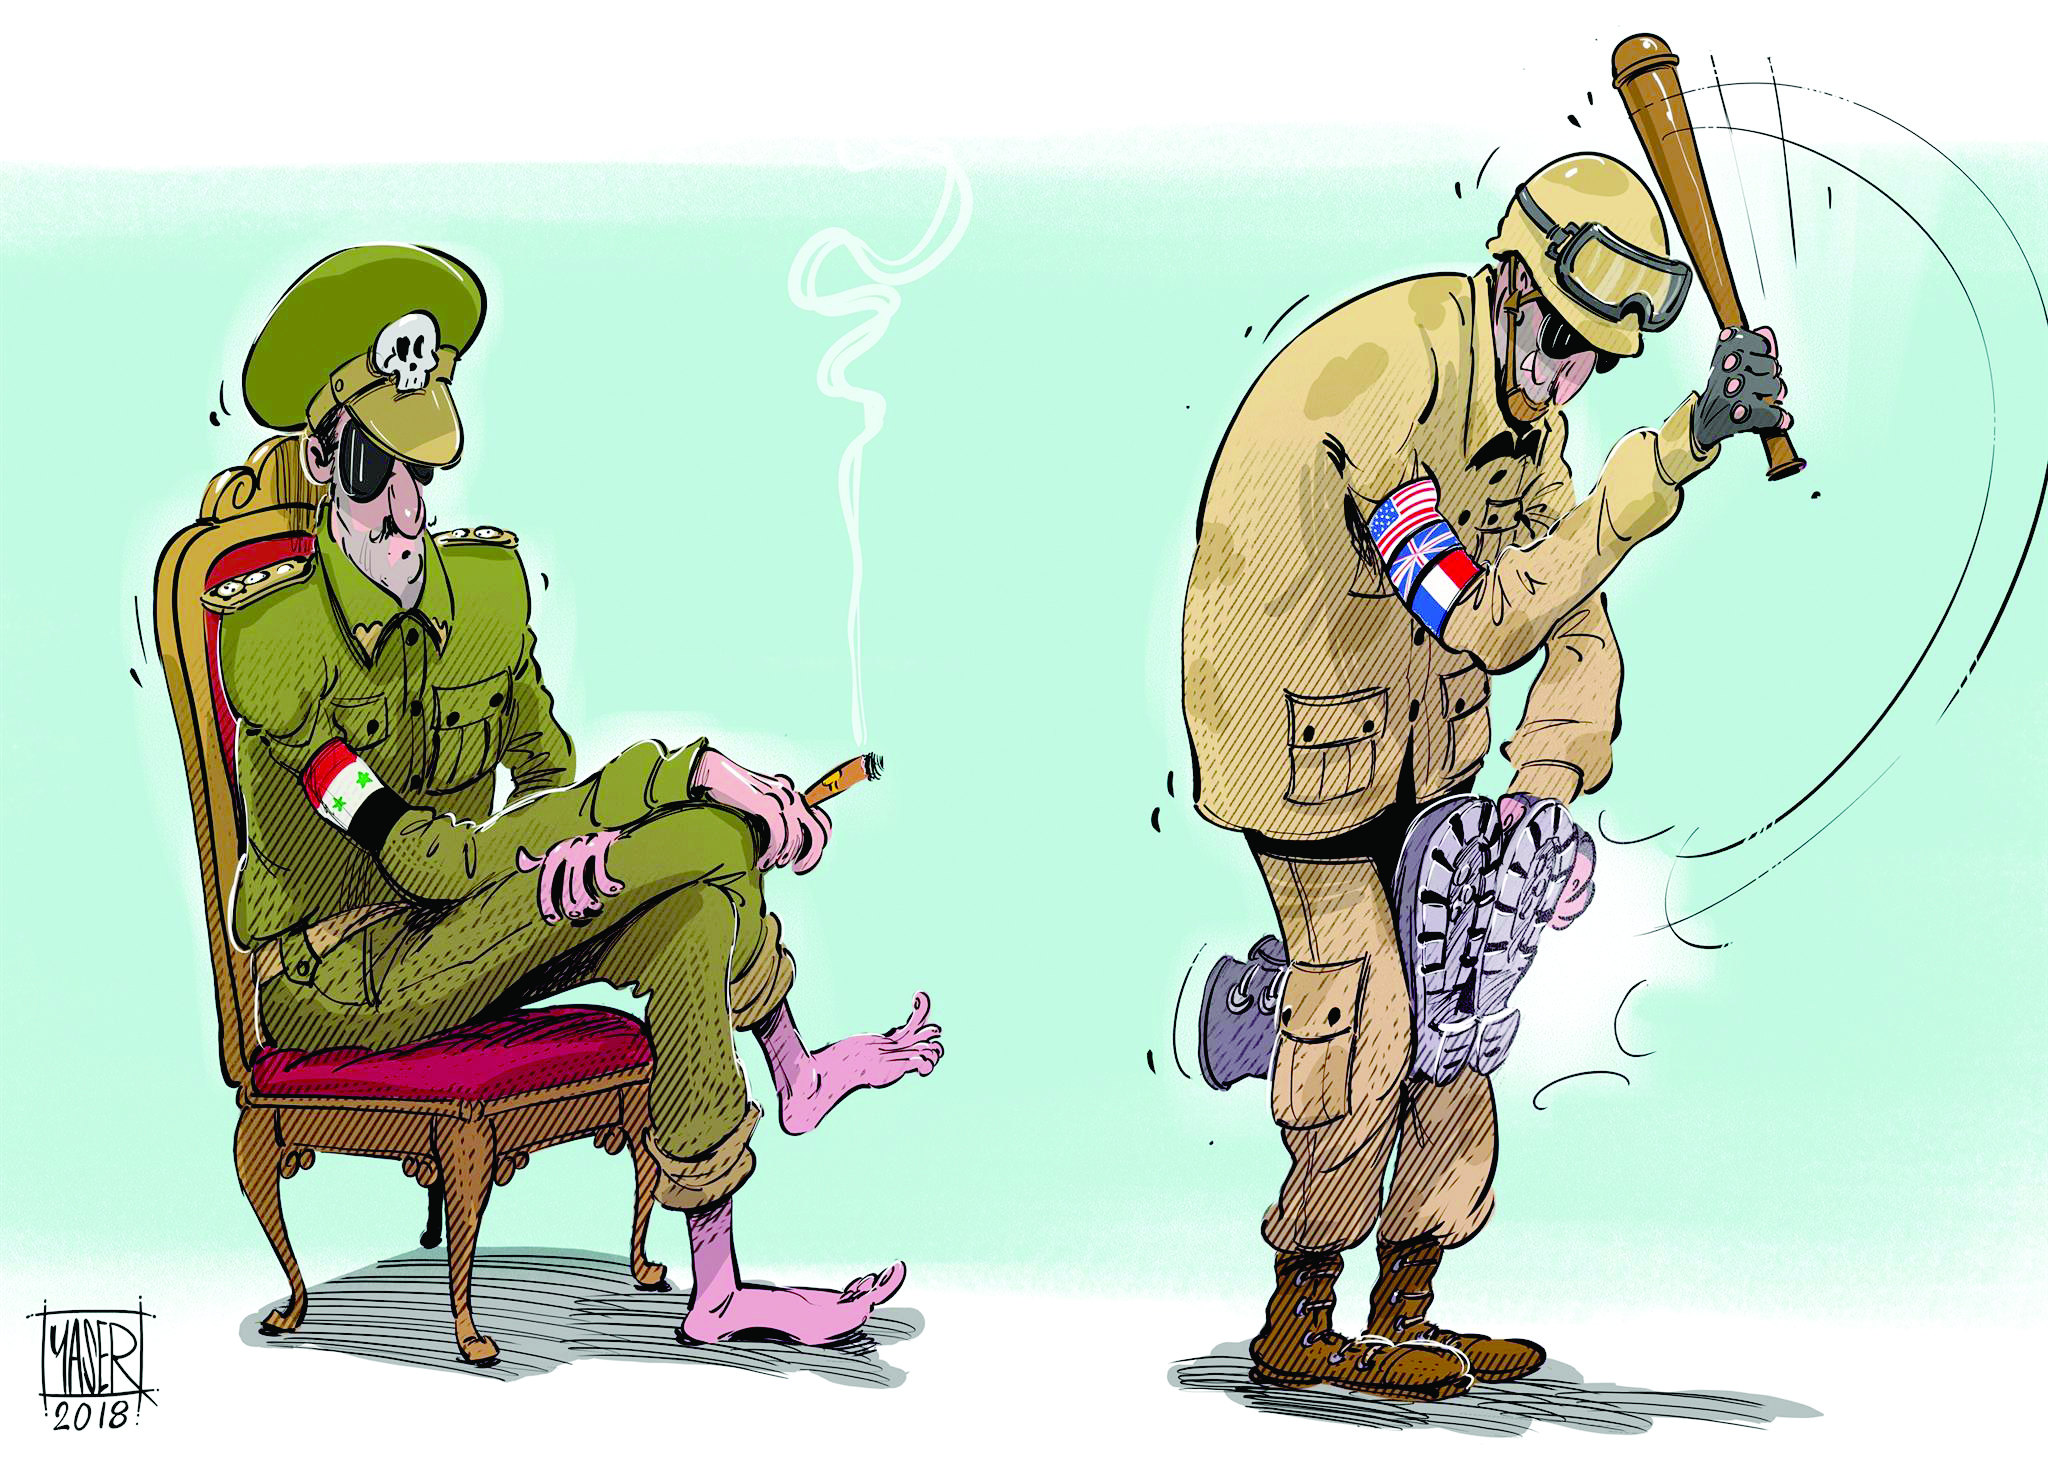 The West punishes Syria's Assad regime © Yaser Ahmed for The Arab Weekly